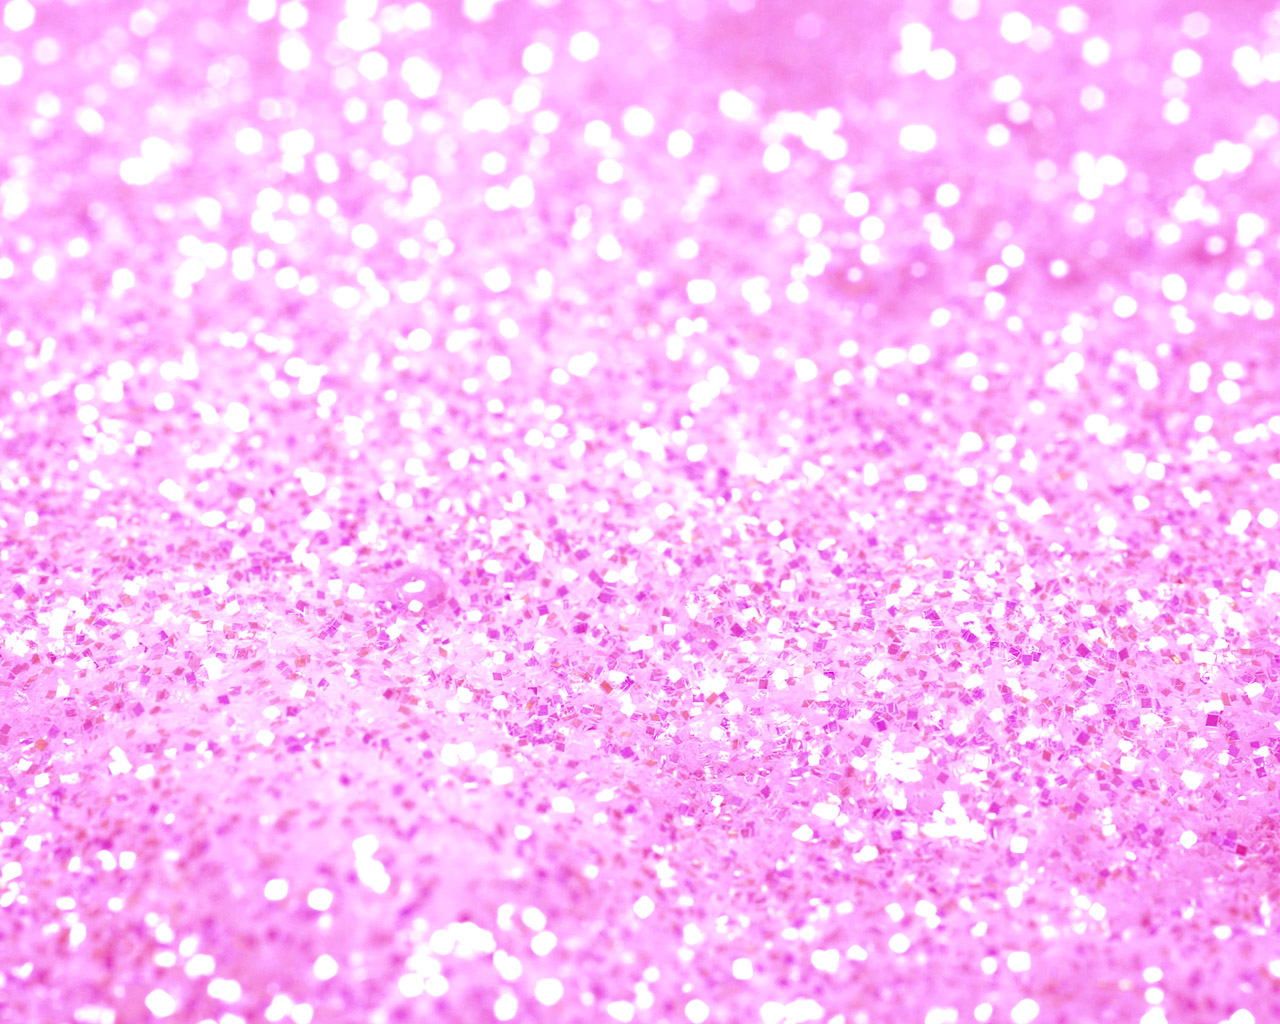 Pink Sparkly Wallpaper